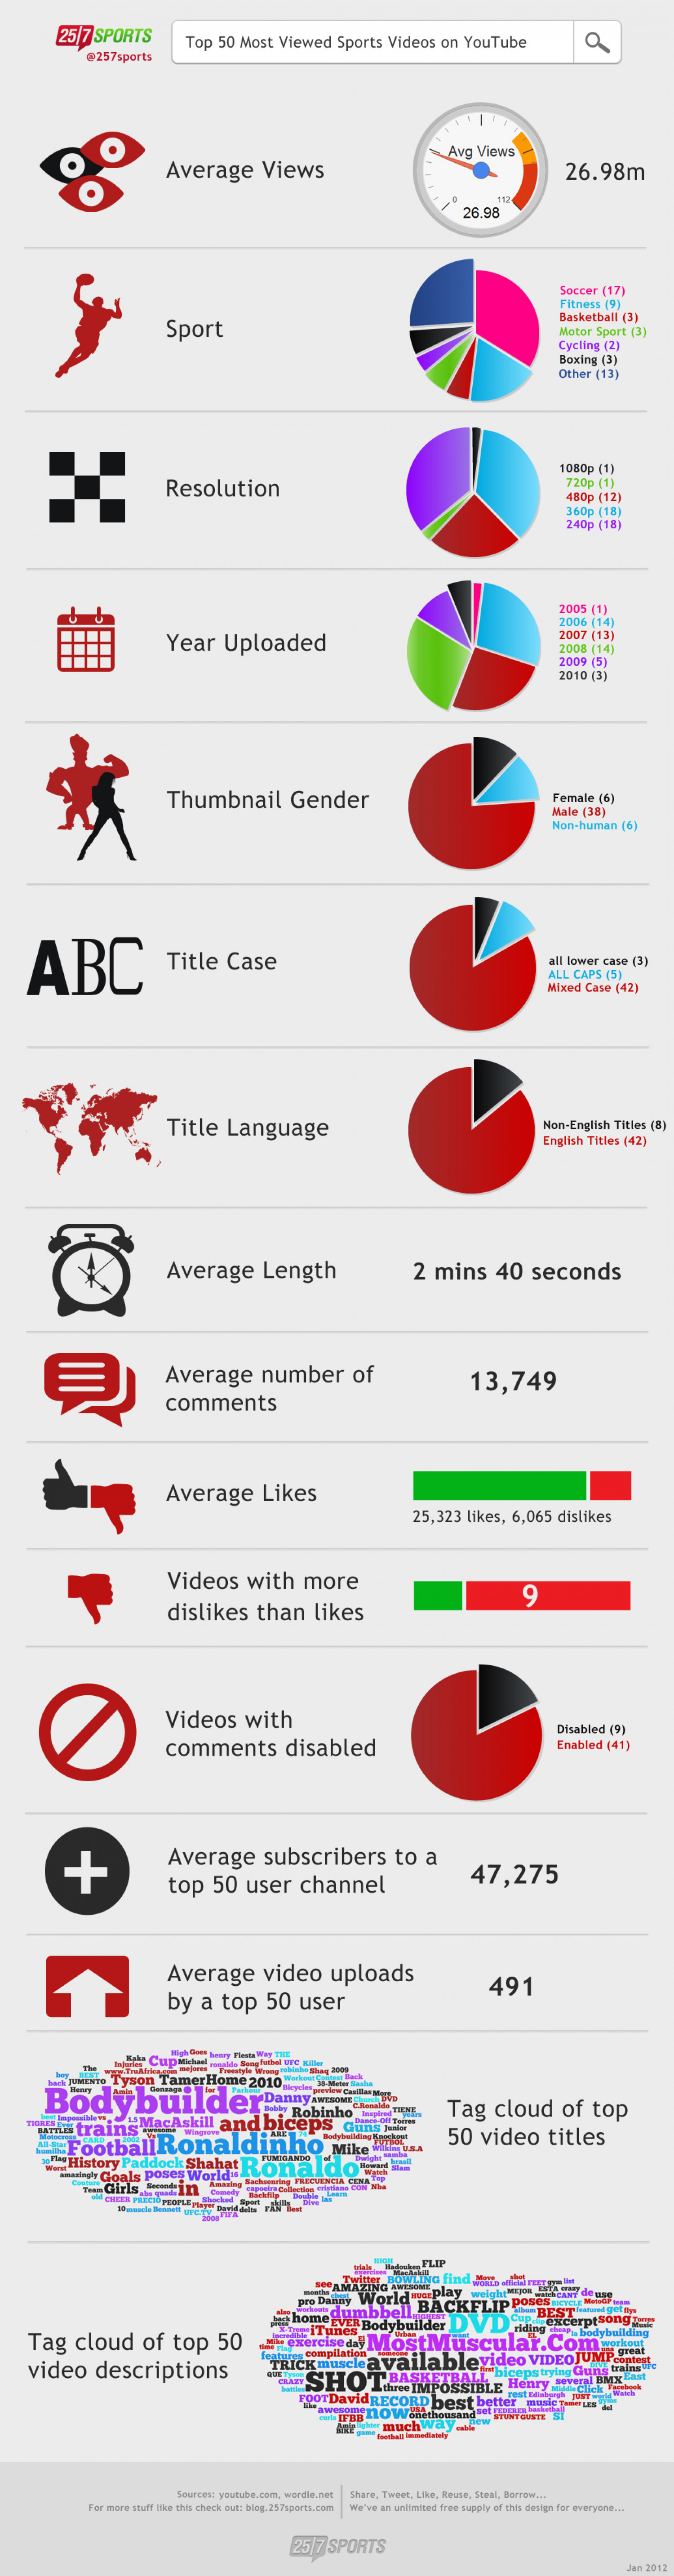 Most Viewed Sports Videos on YouTube Infographic